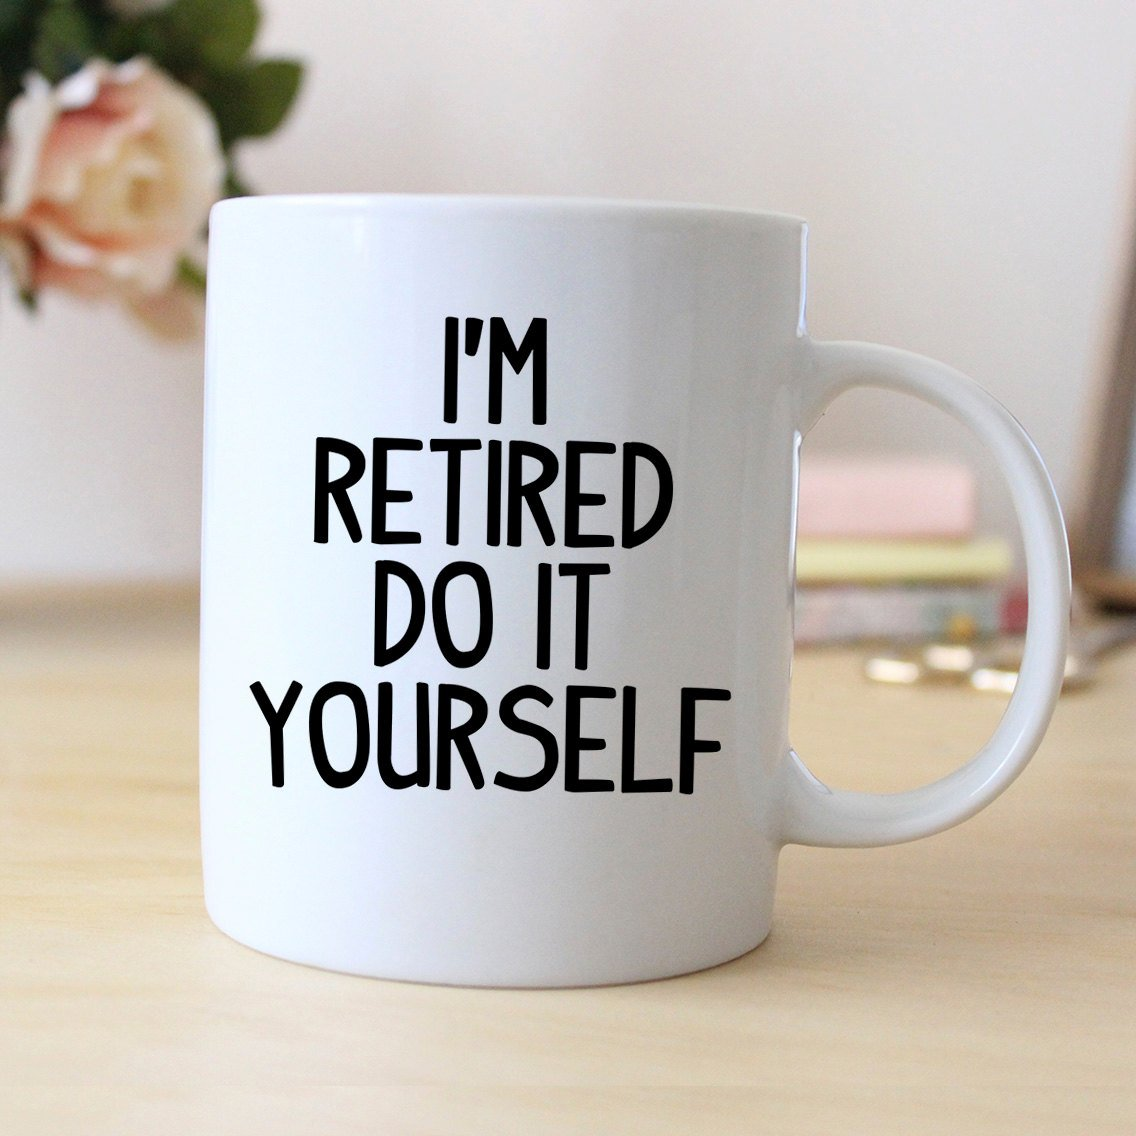 Im Retired Do It Yourself Coffee Mug Ceramic Funny Christmas Gift Birthday Anniversary For Him Her Idea